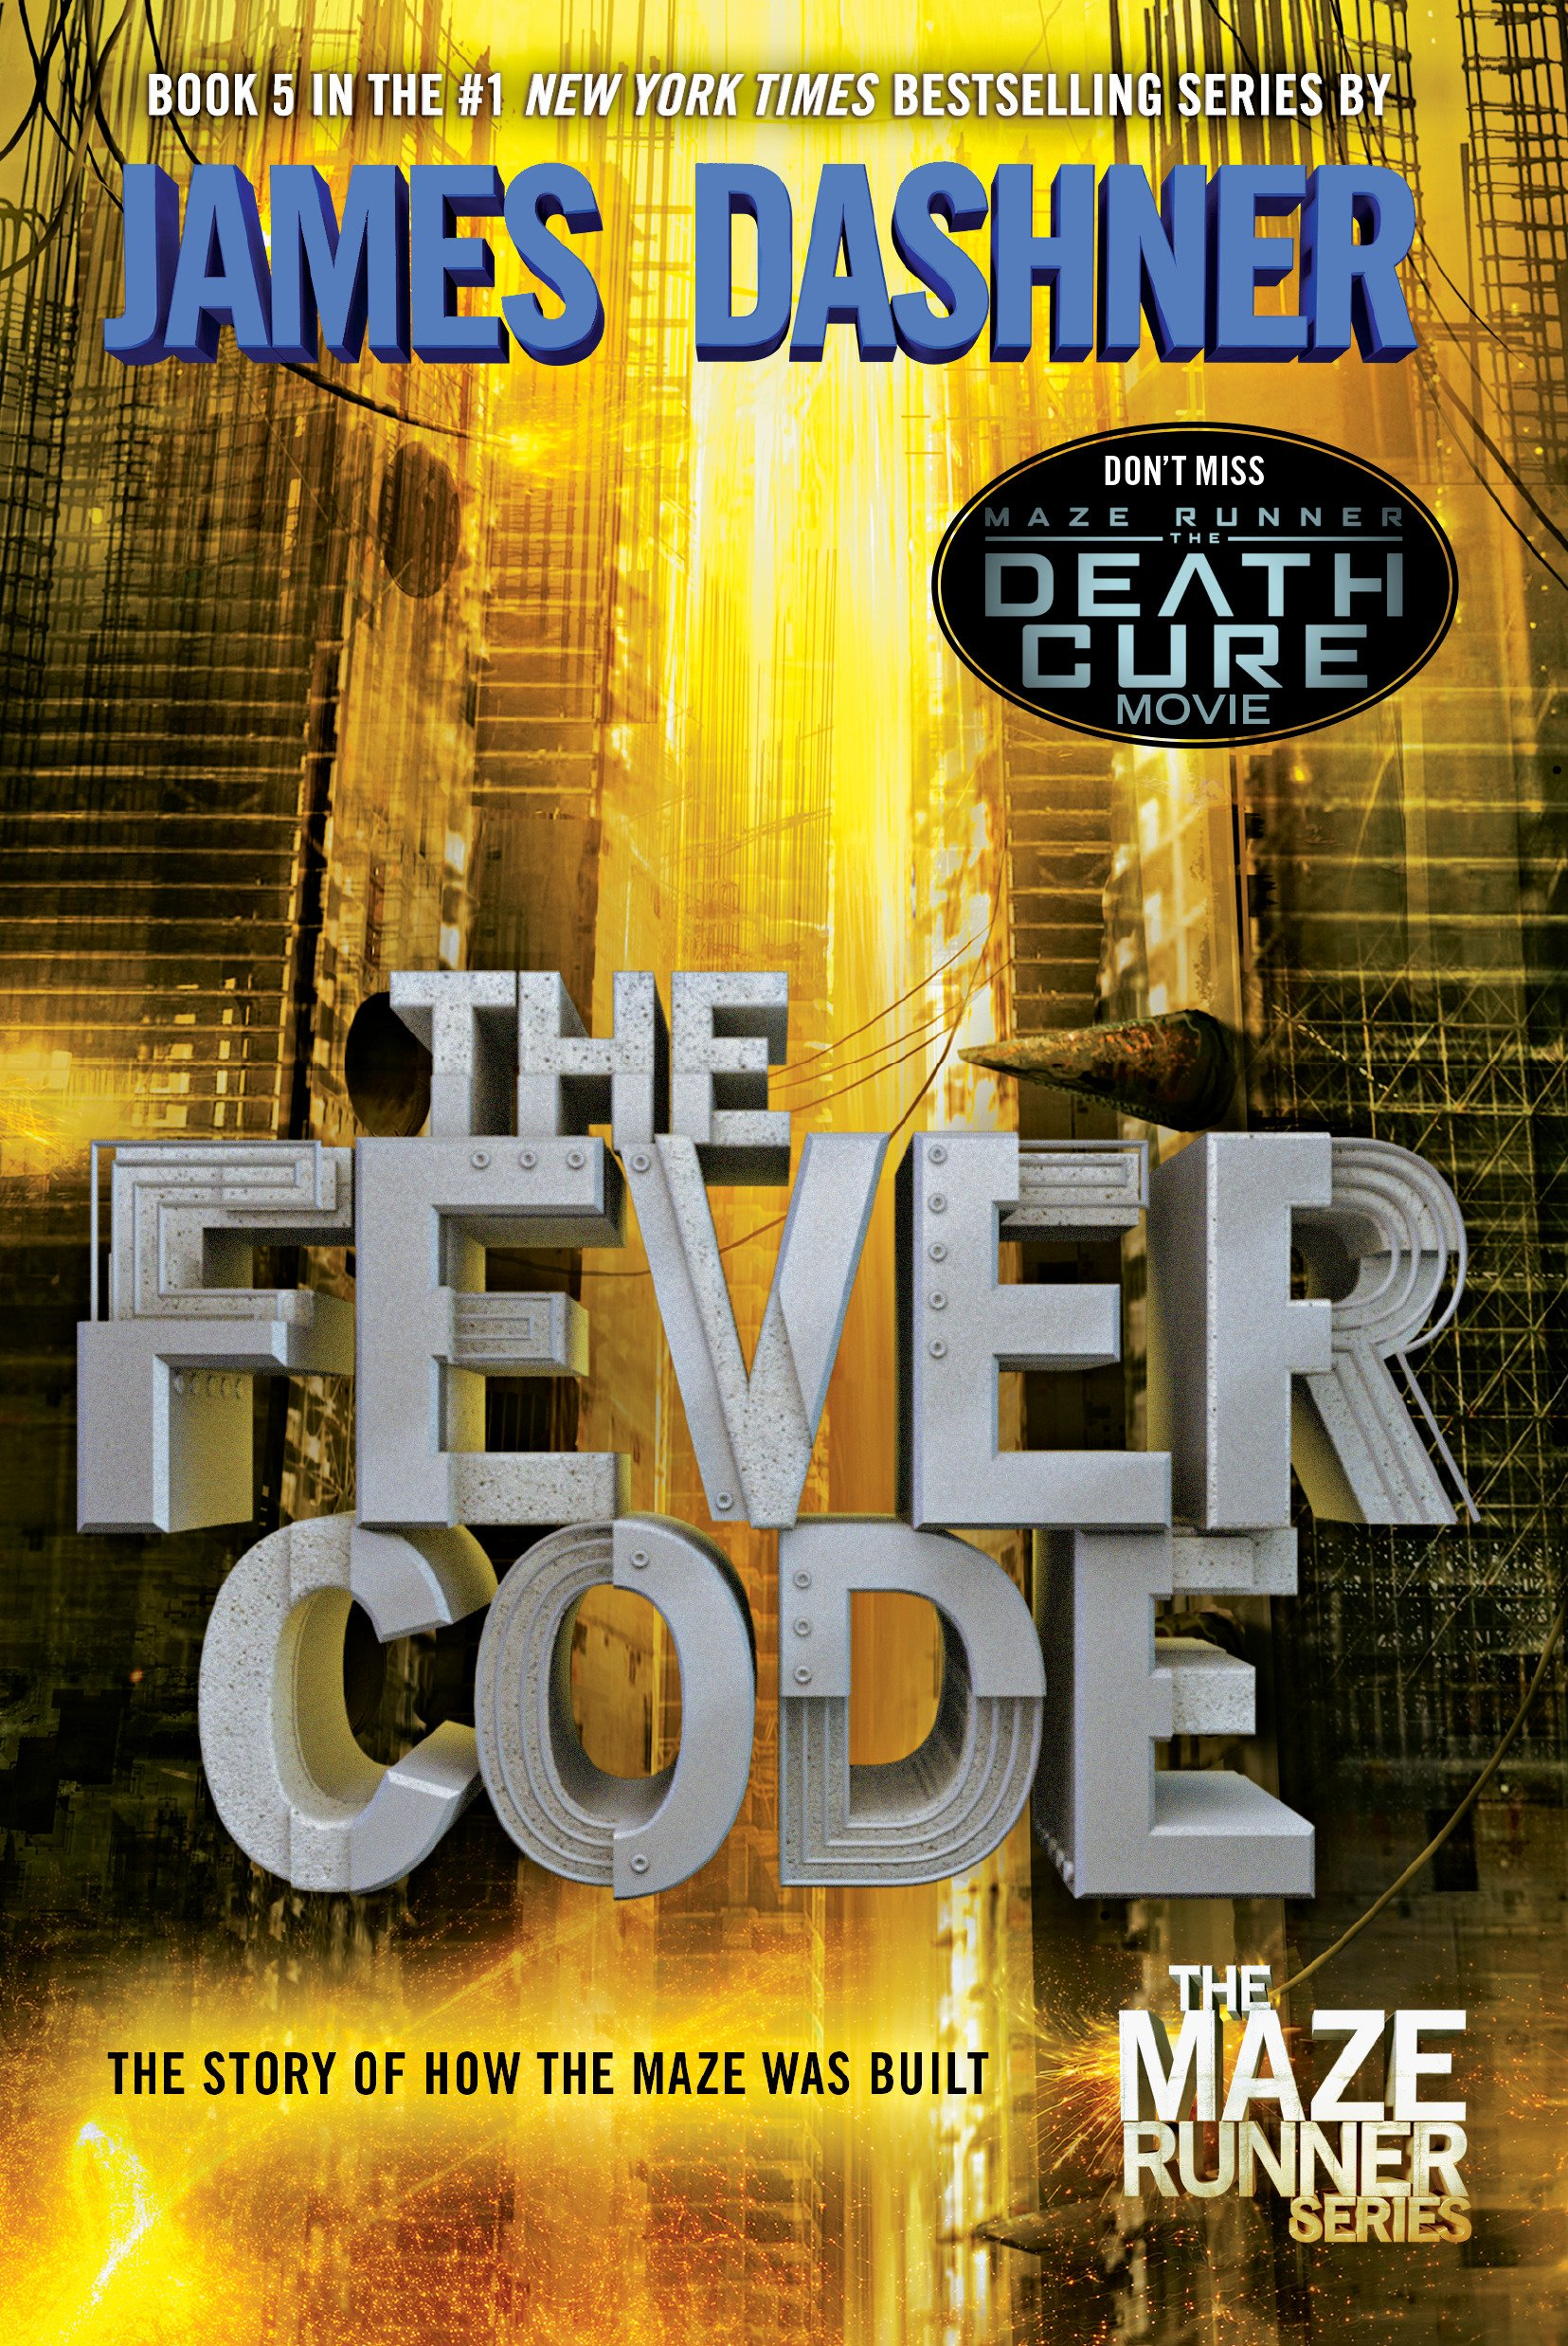 Fever Code Maze Runner Prequel product image